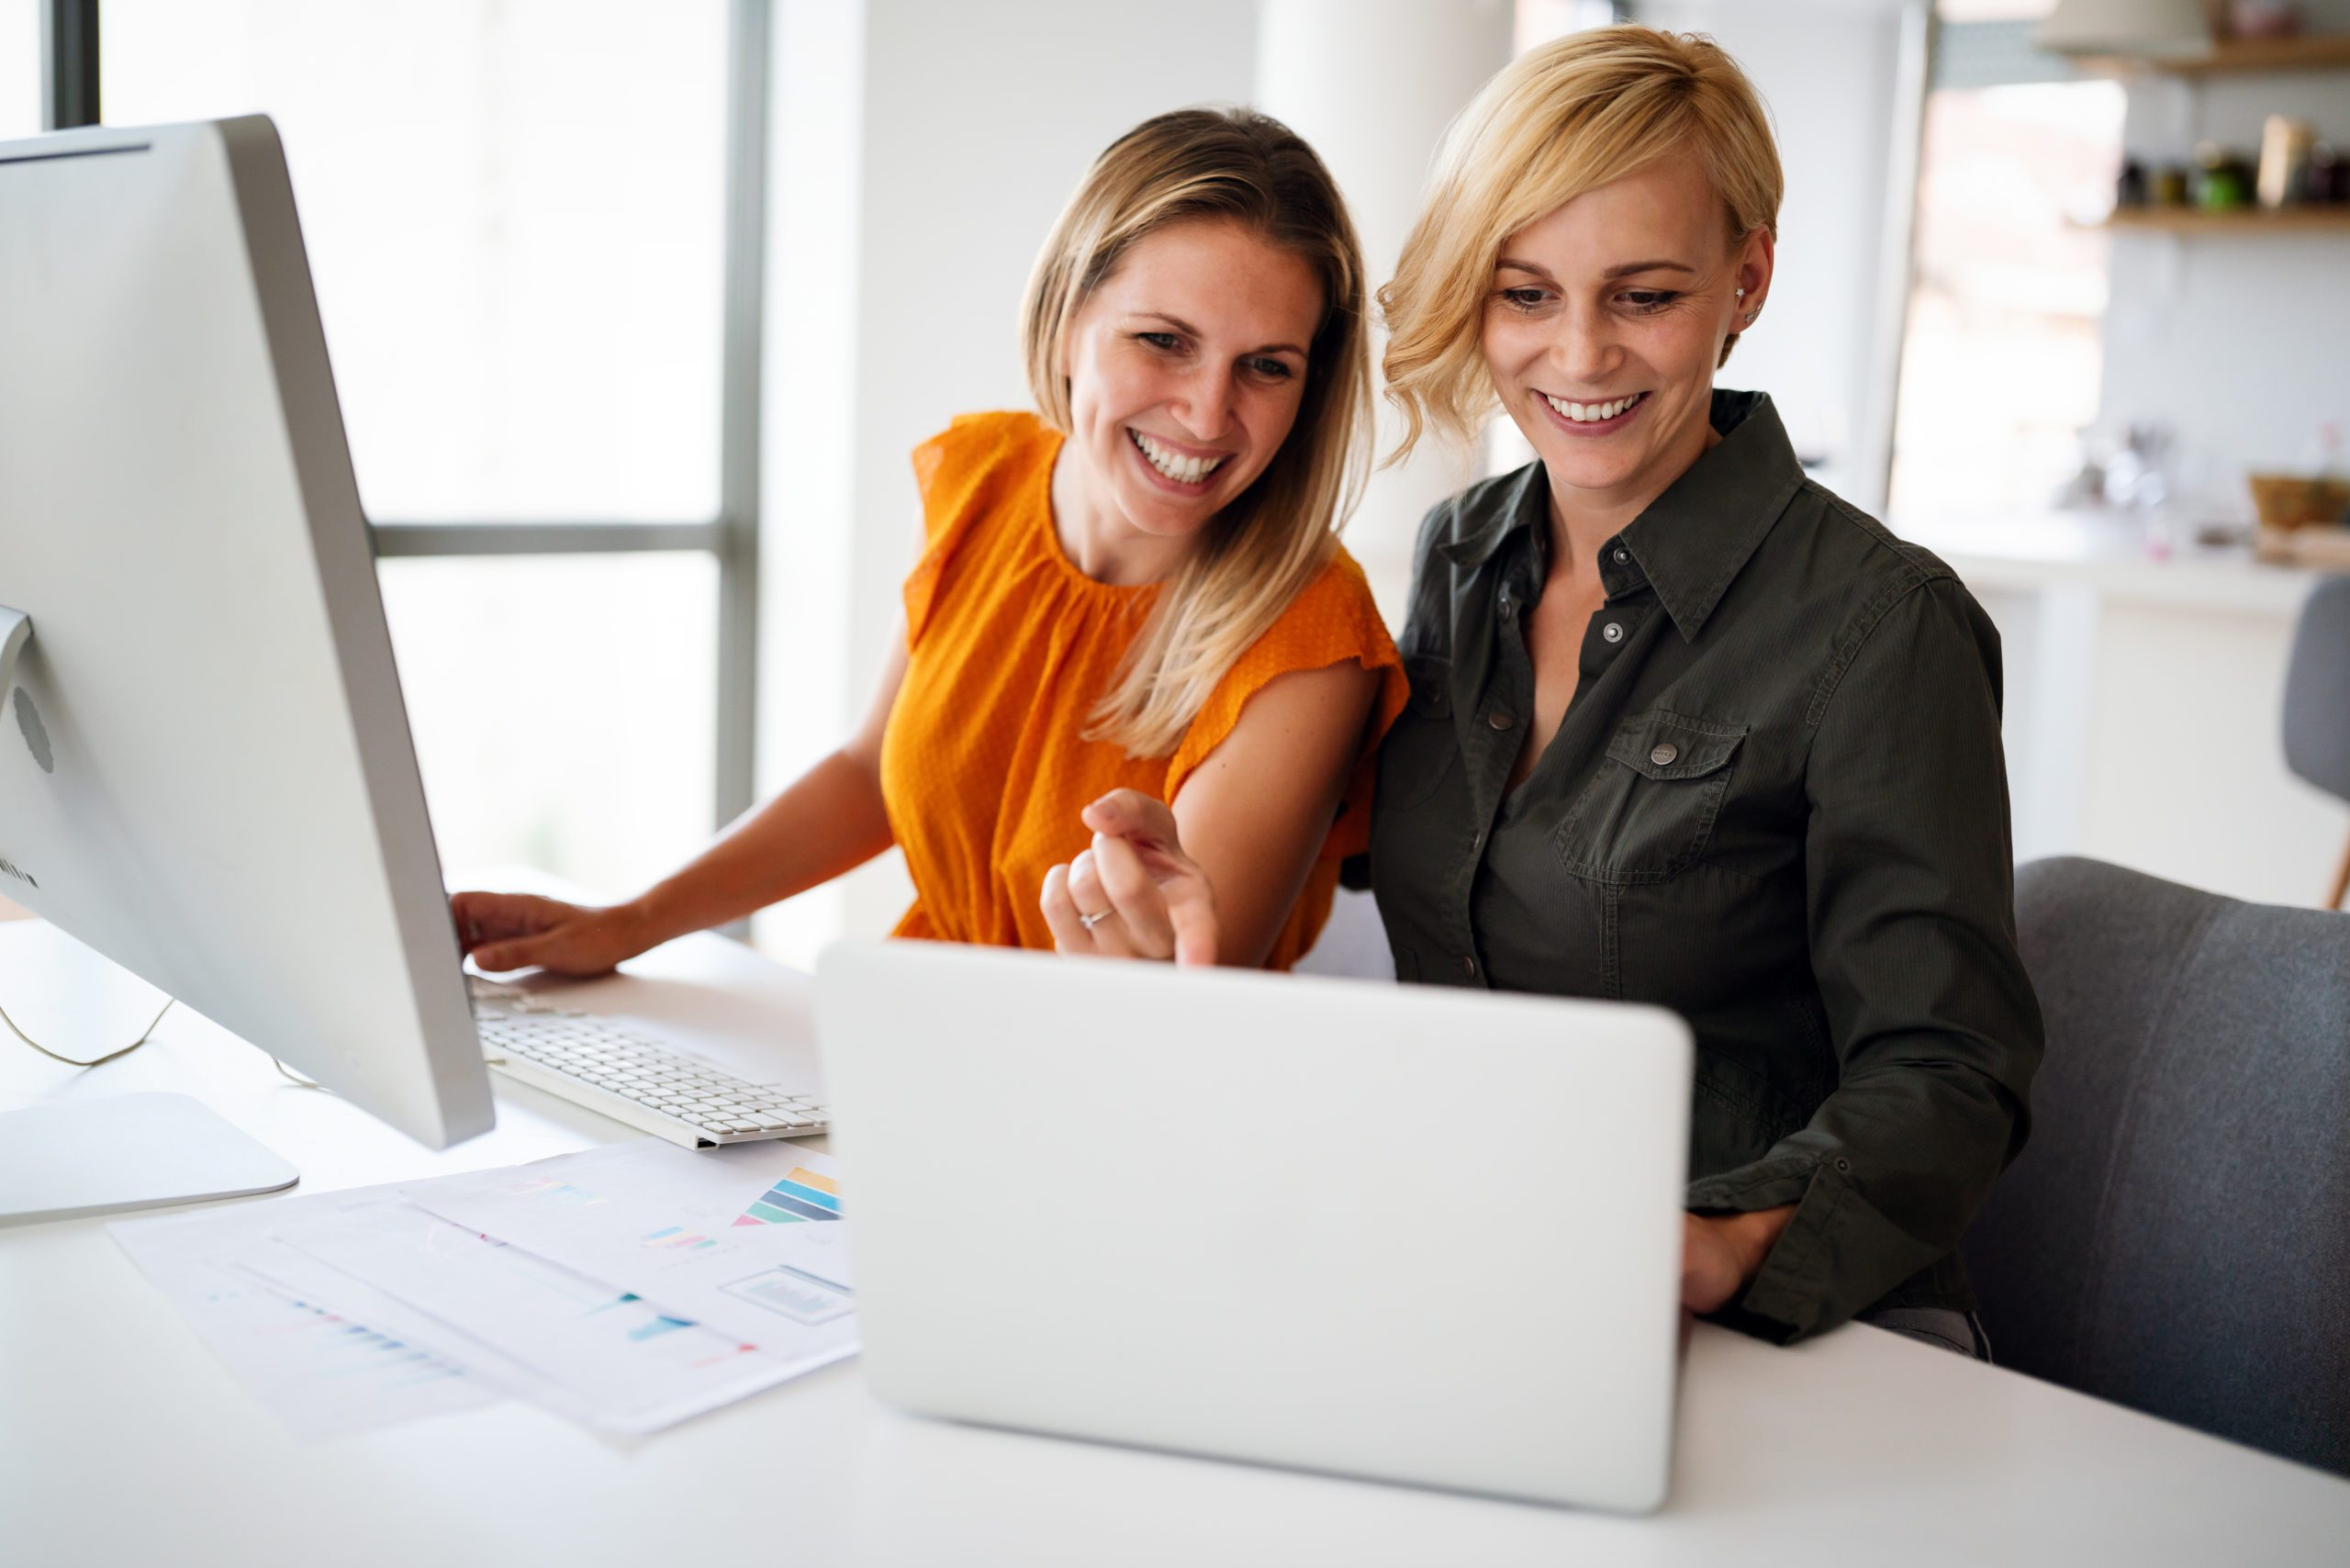 Business women working at the office on a computer. Business, teamwork, office concept.